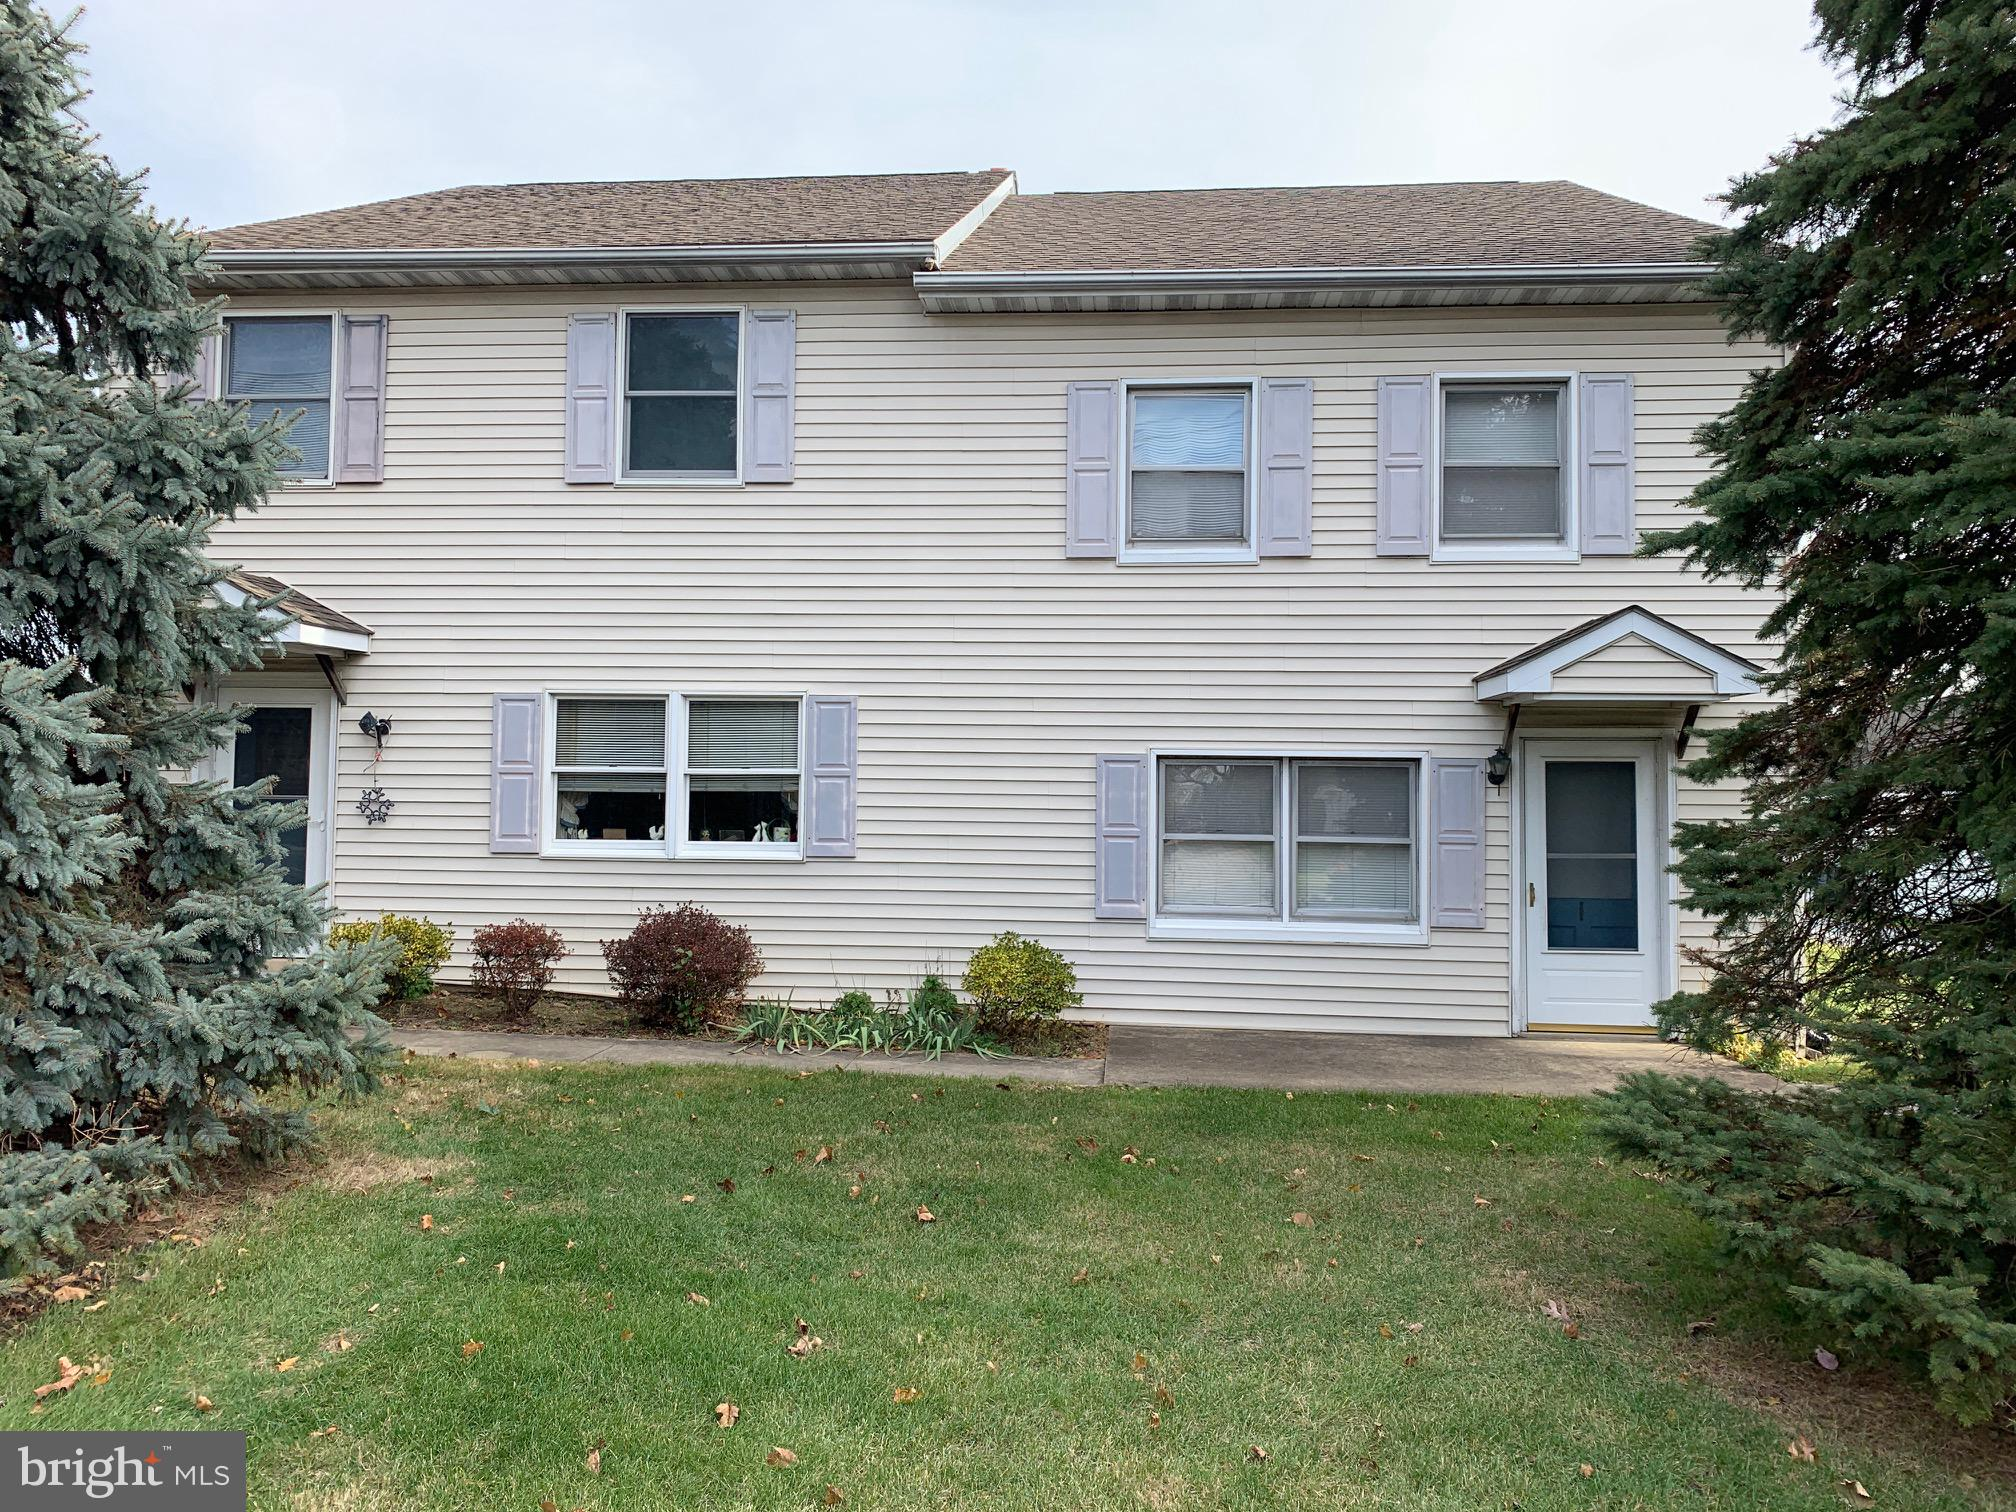 2815 WILLOW STREET PIKE, WILLOW STREET, PA 17584